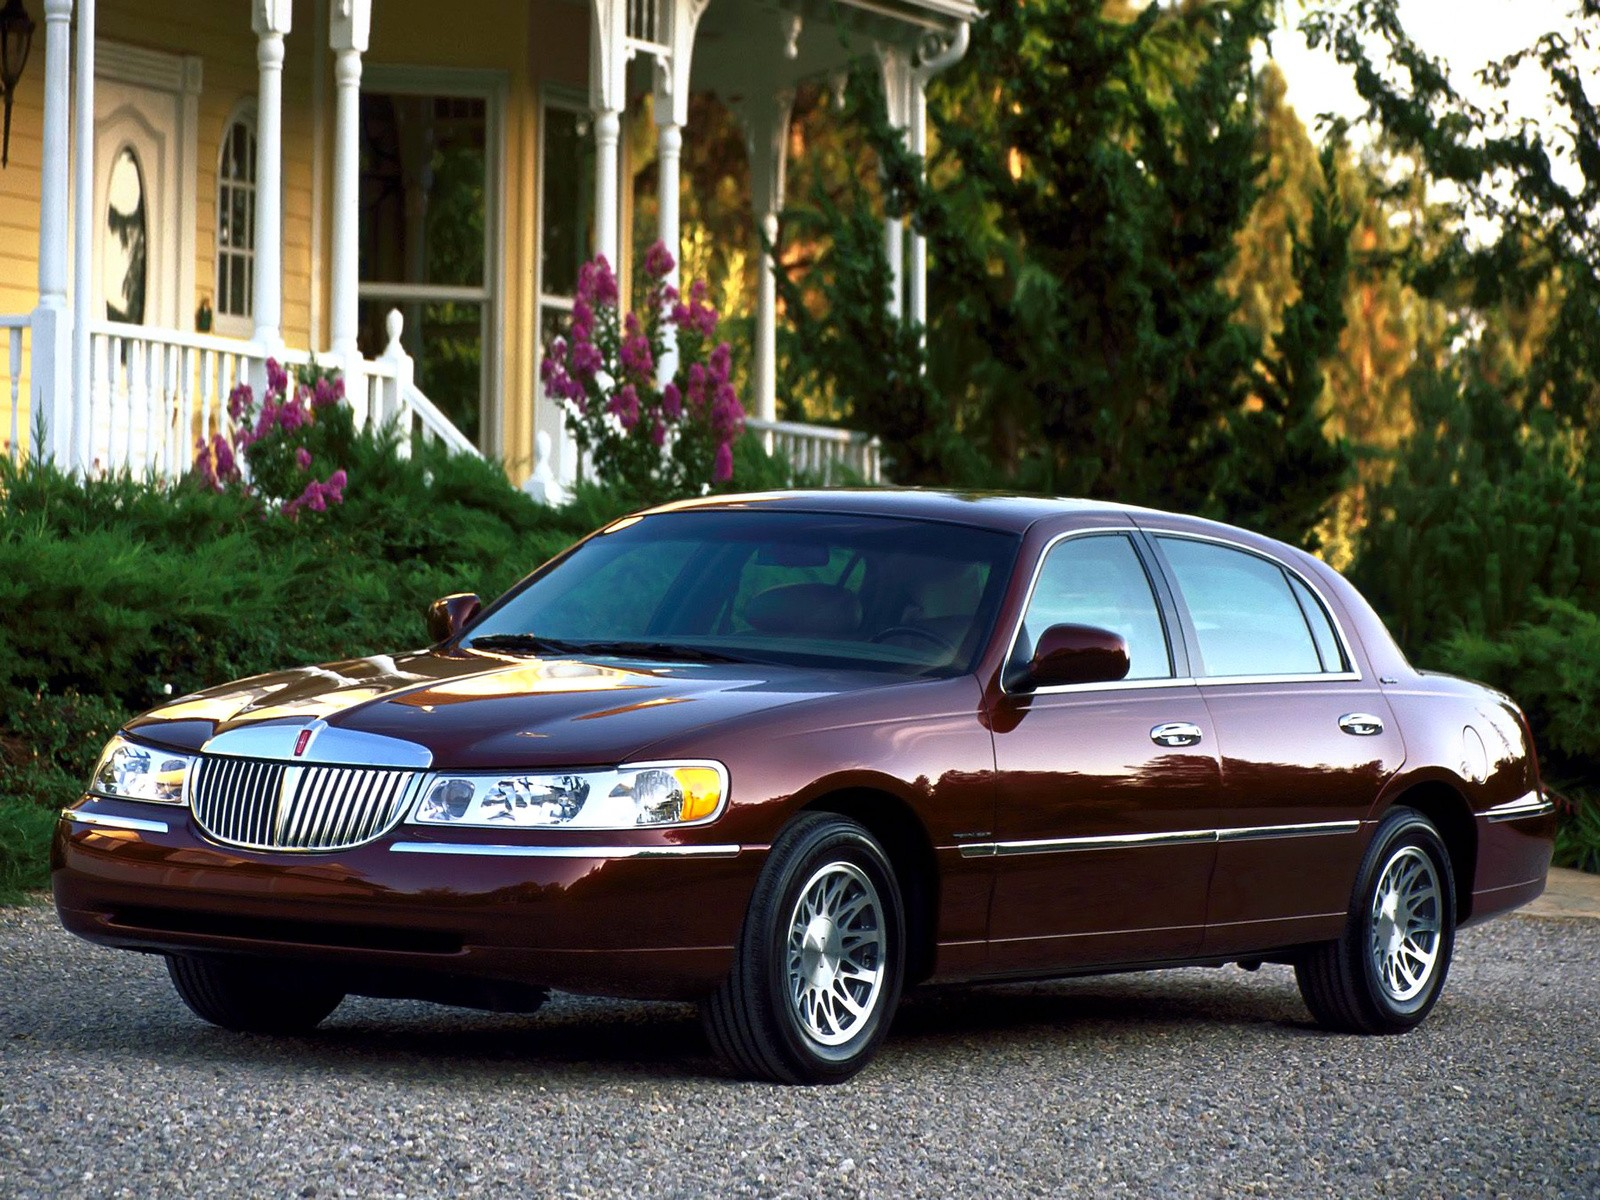 lincoln town car specs photos 2007 2008 2009 2010 2011 autoevolution. Black Bedroom Furniture Sets. Home Design Ideas